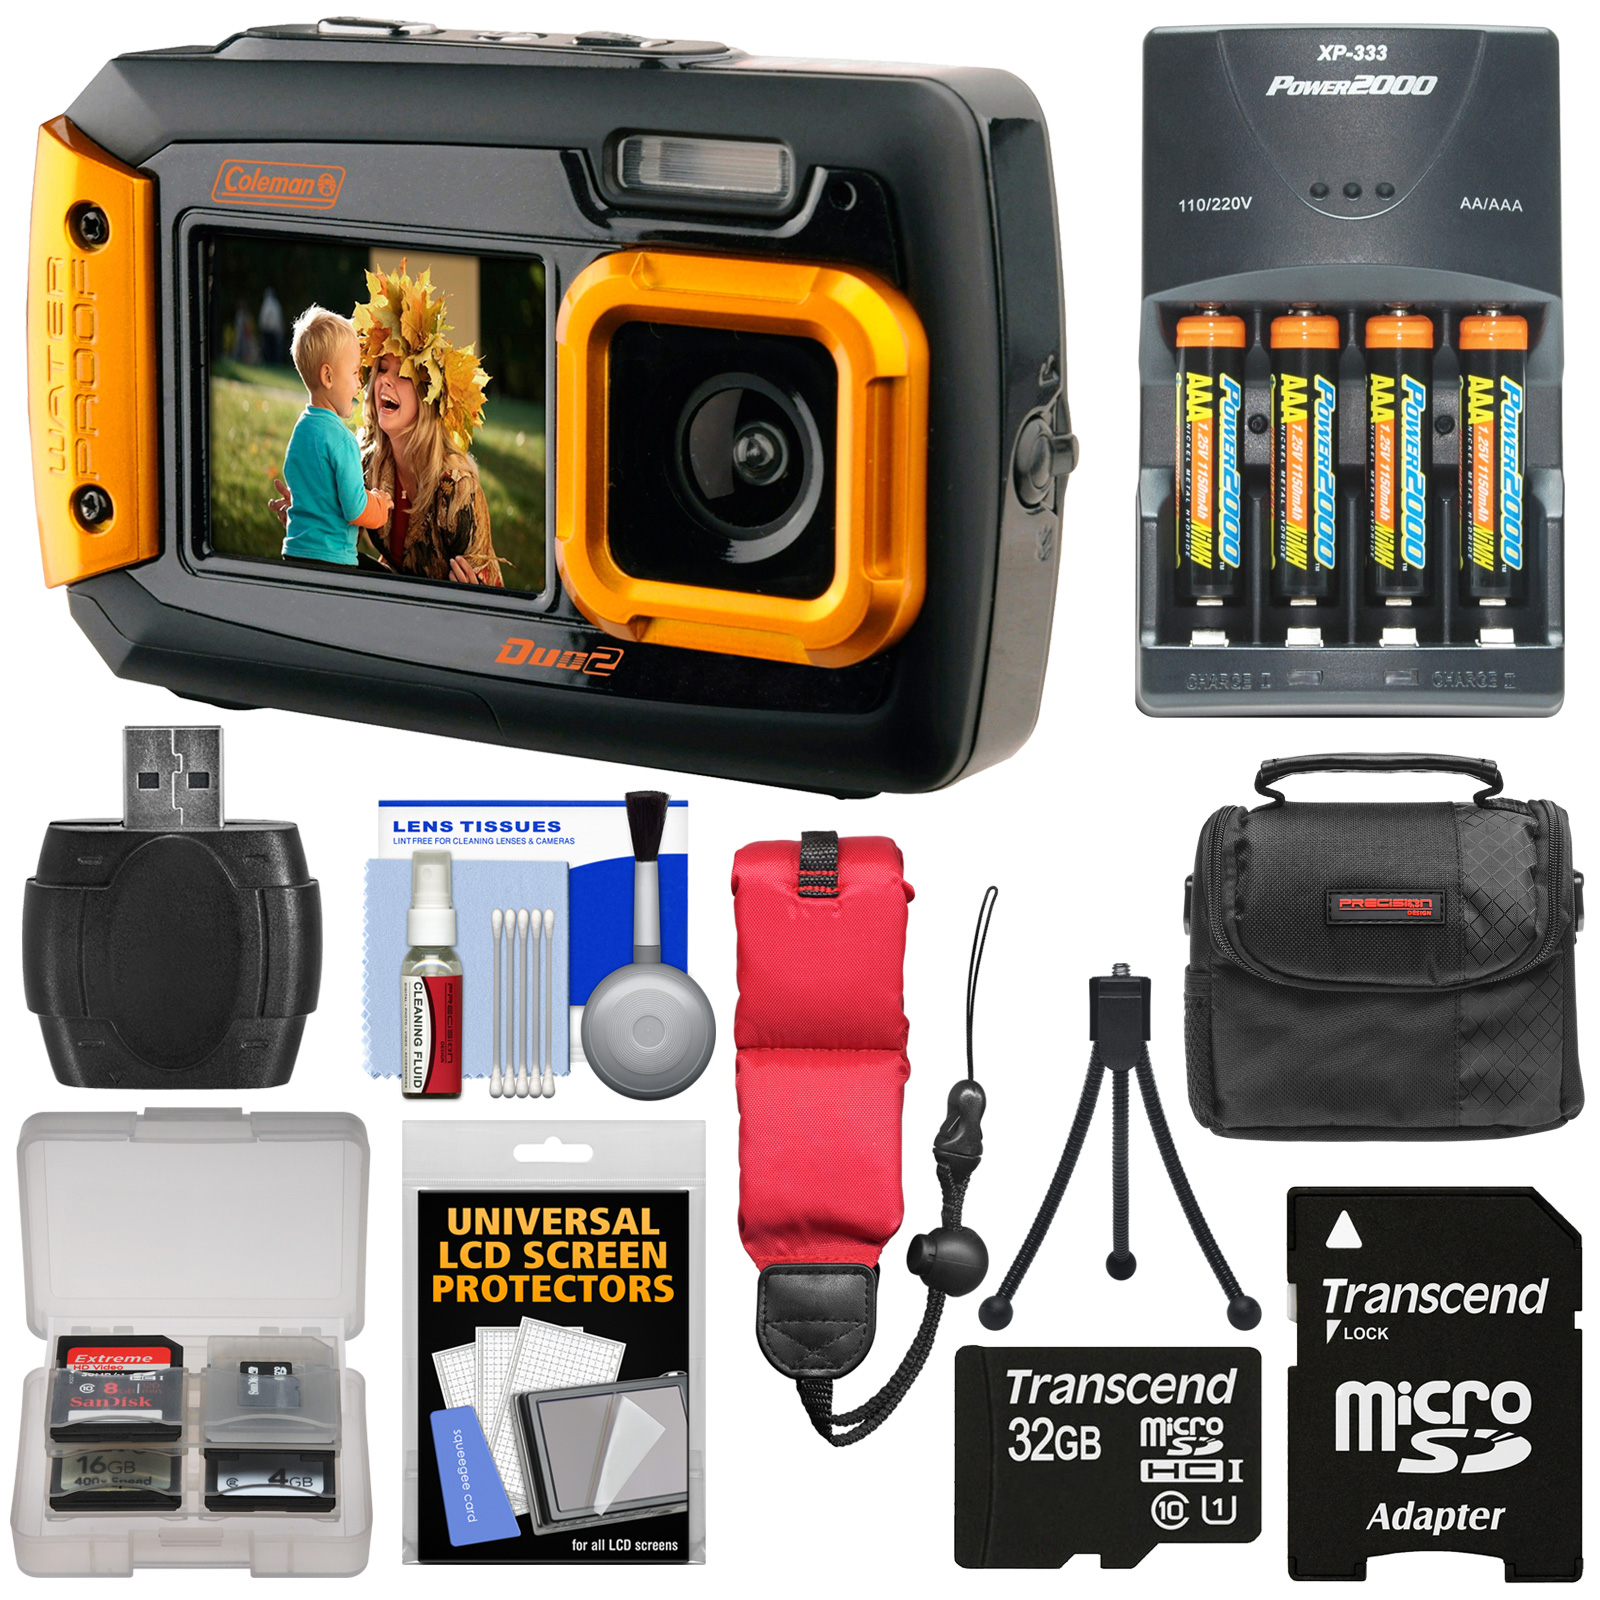 Coleman Duo 2V9WP Dual Screen Shock & Waterproof Digital Camera (Yellow) with 32GB Card + Batteries & Charger + Case +... by Coleman